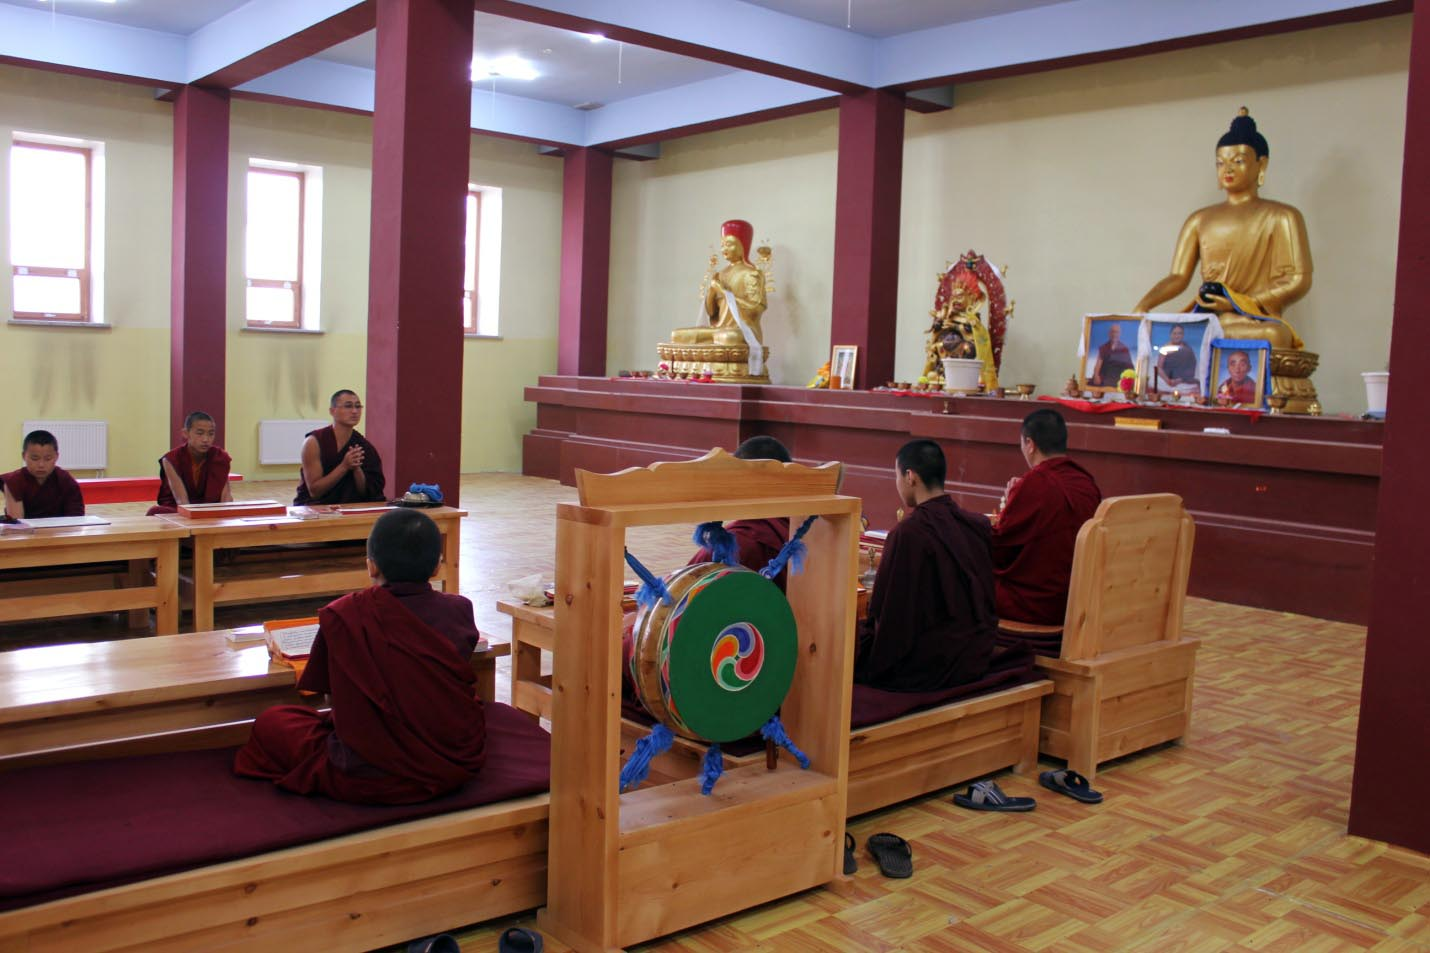 The Sangha at prayer in the shrine hall picture 3